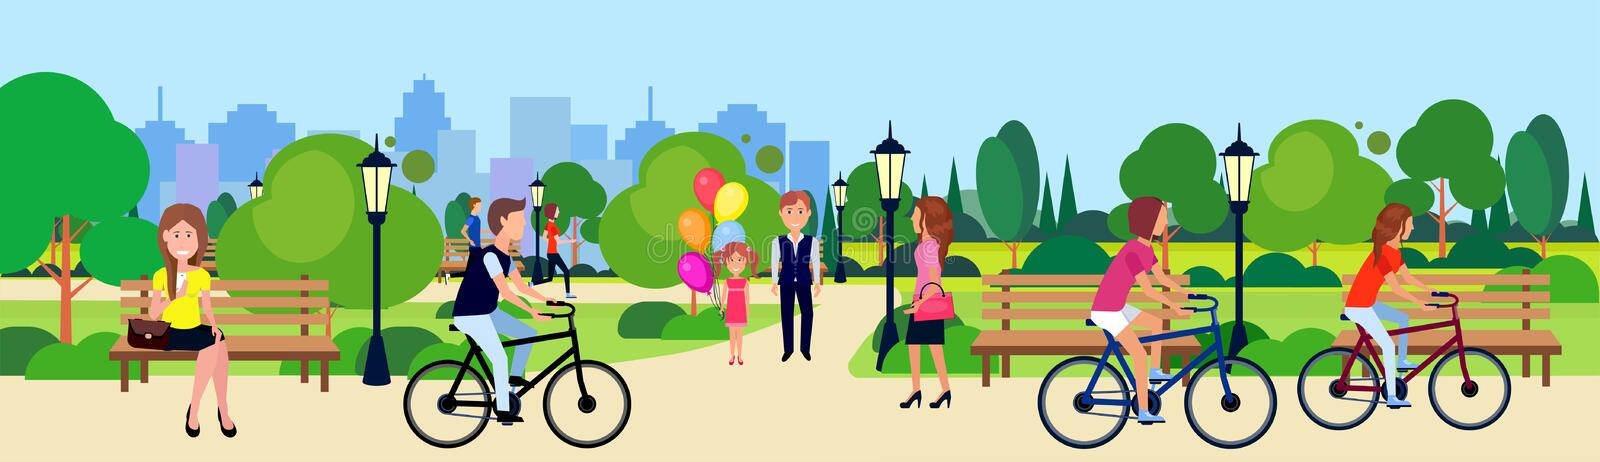 Public park people relax sitting wooden bench outdoors walking cycling running green lawn trees on city buildings. Template background flat banner vector royalty free illustration